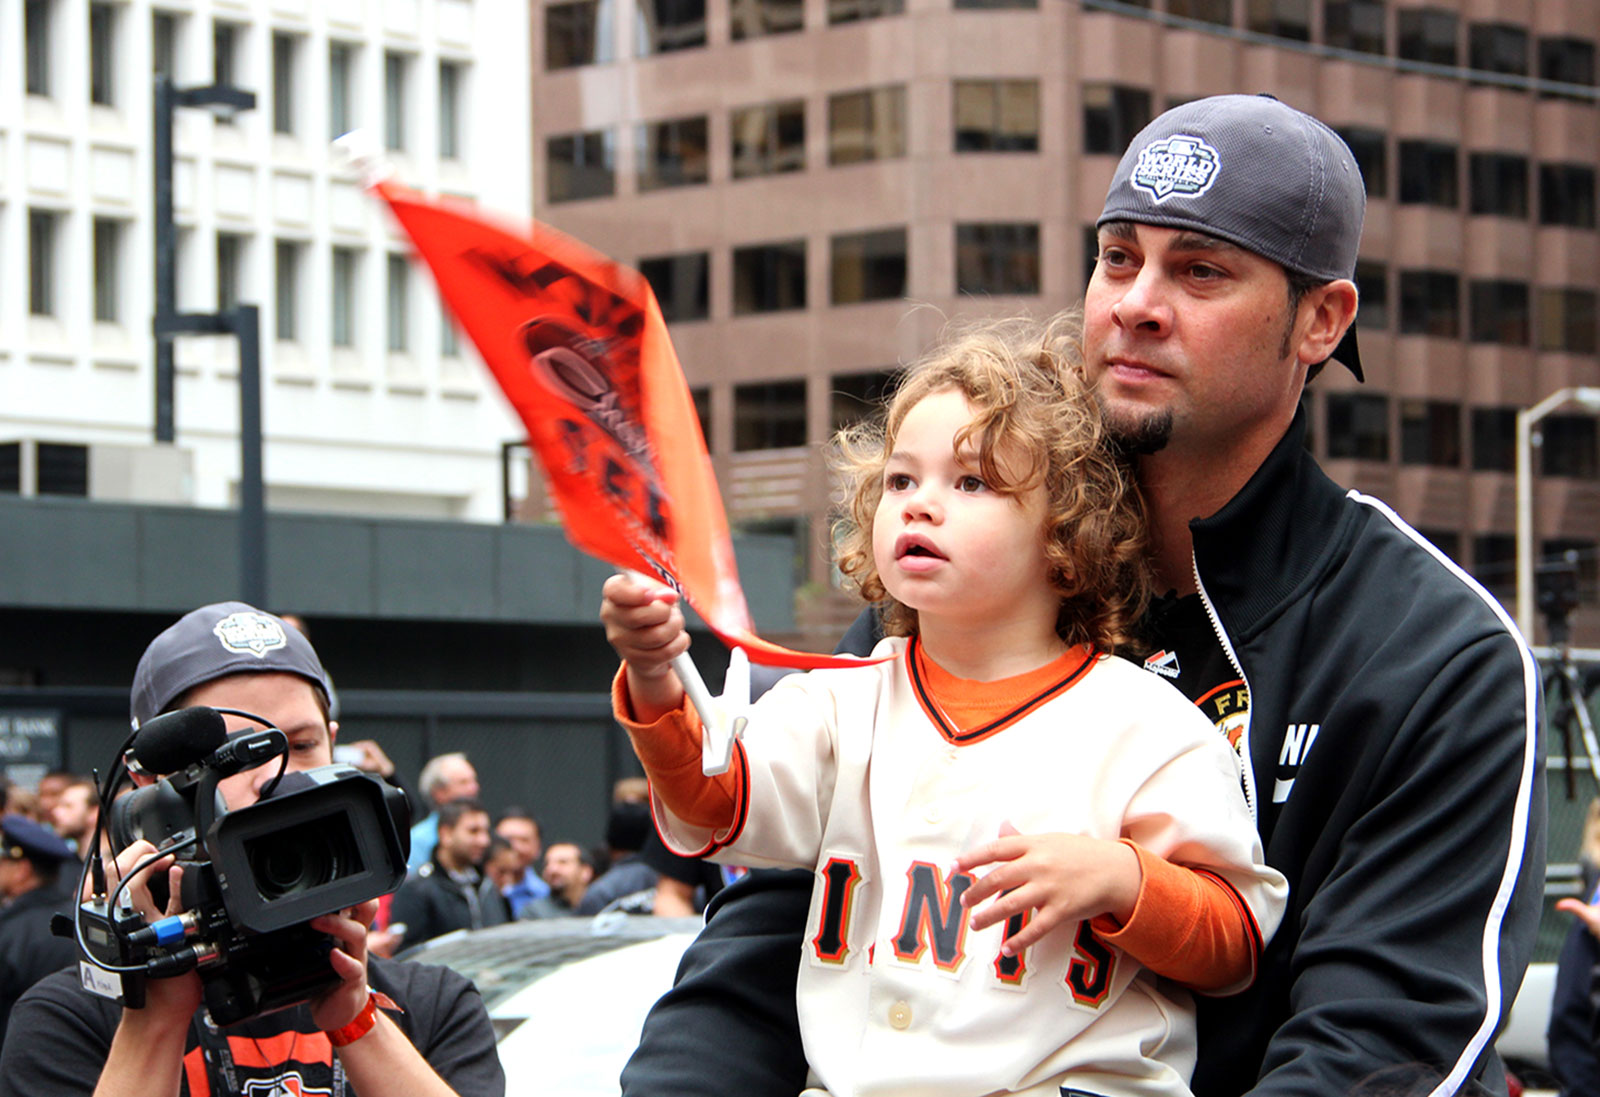 Photo of Ryan Vogelsong and daughter